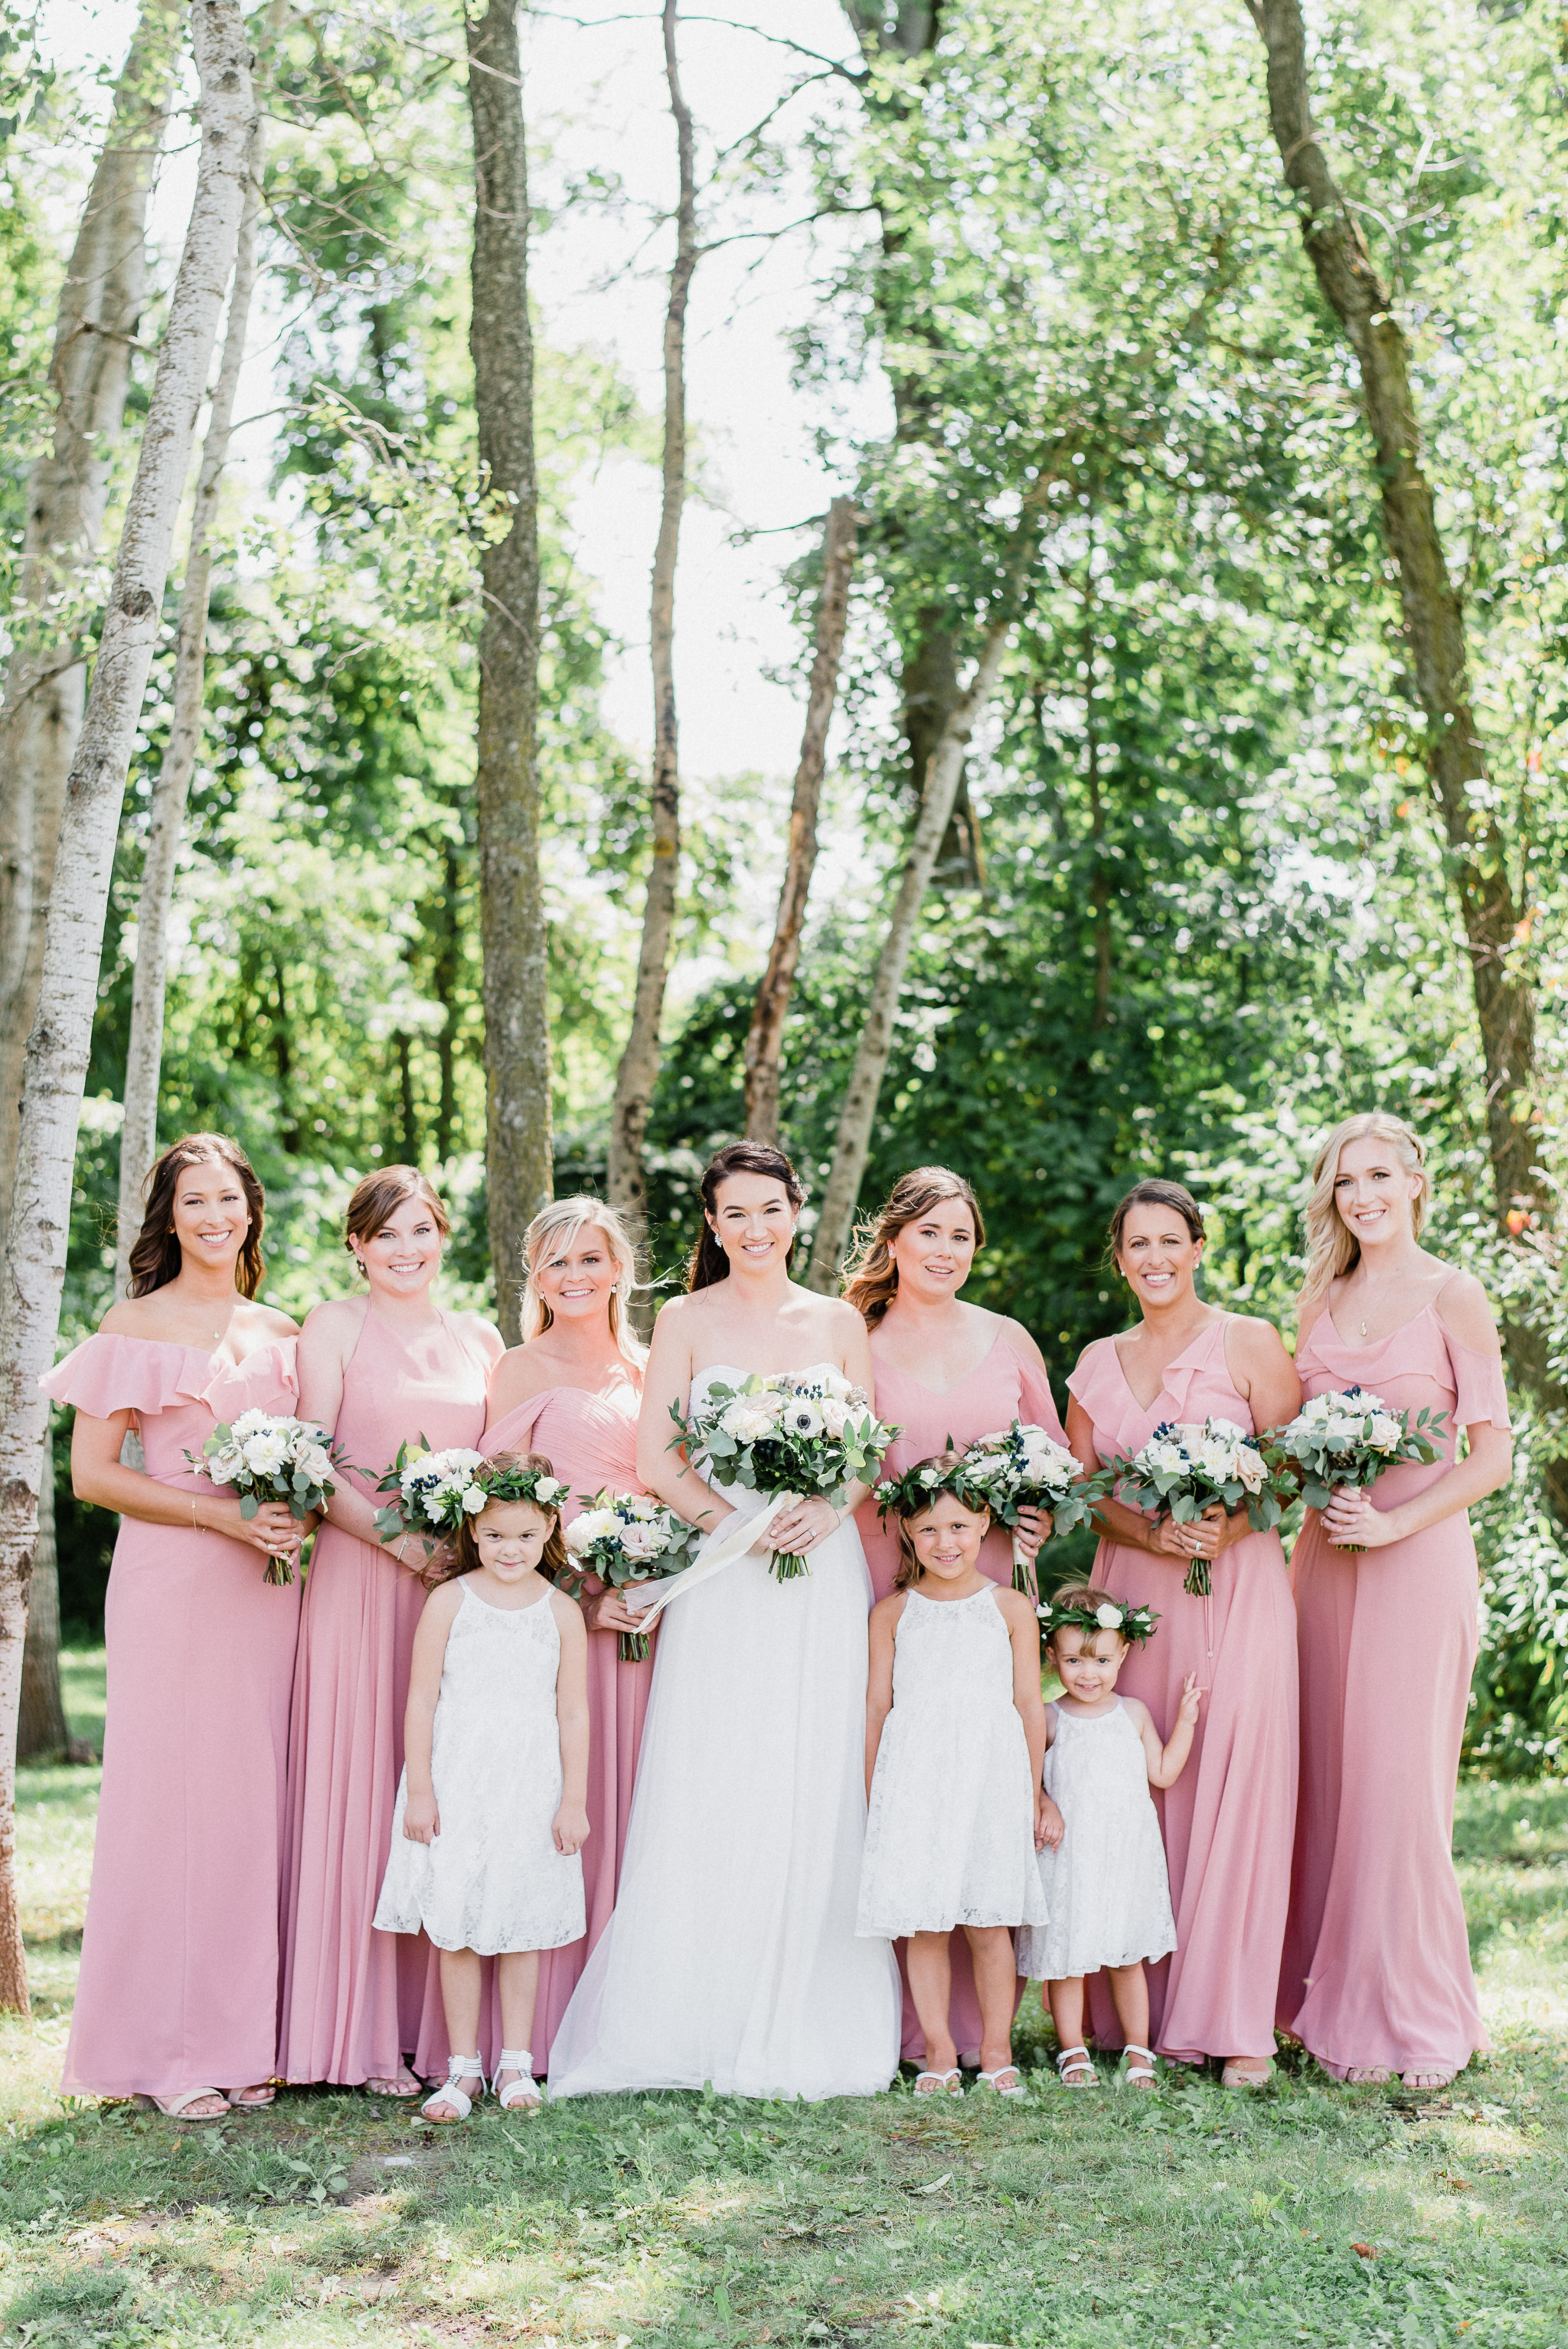 Holland Marsh Wineries wedding by Jenn Kavanagh Photography | Newmarket, Ontario Wedding